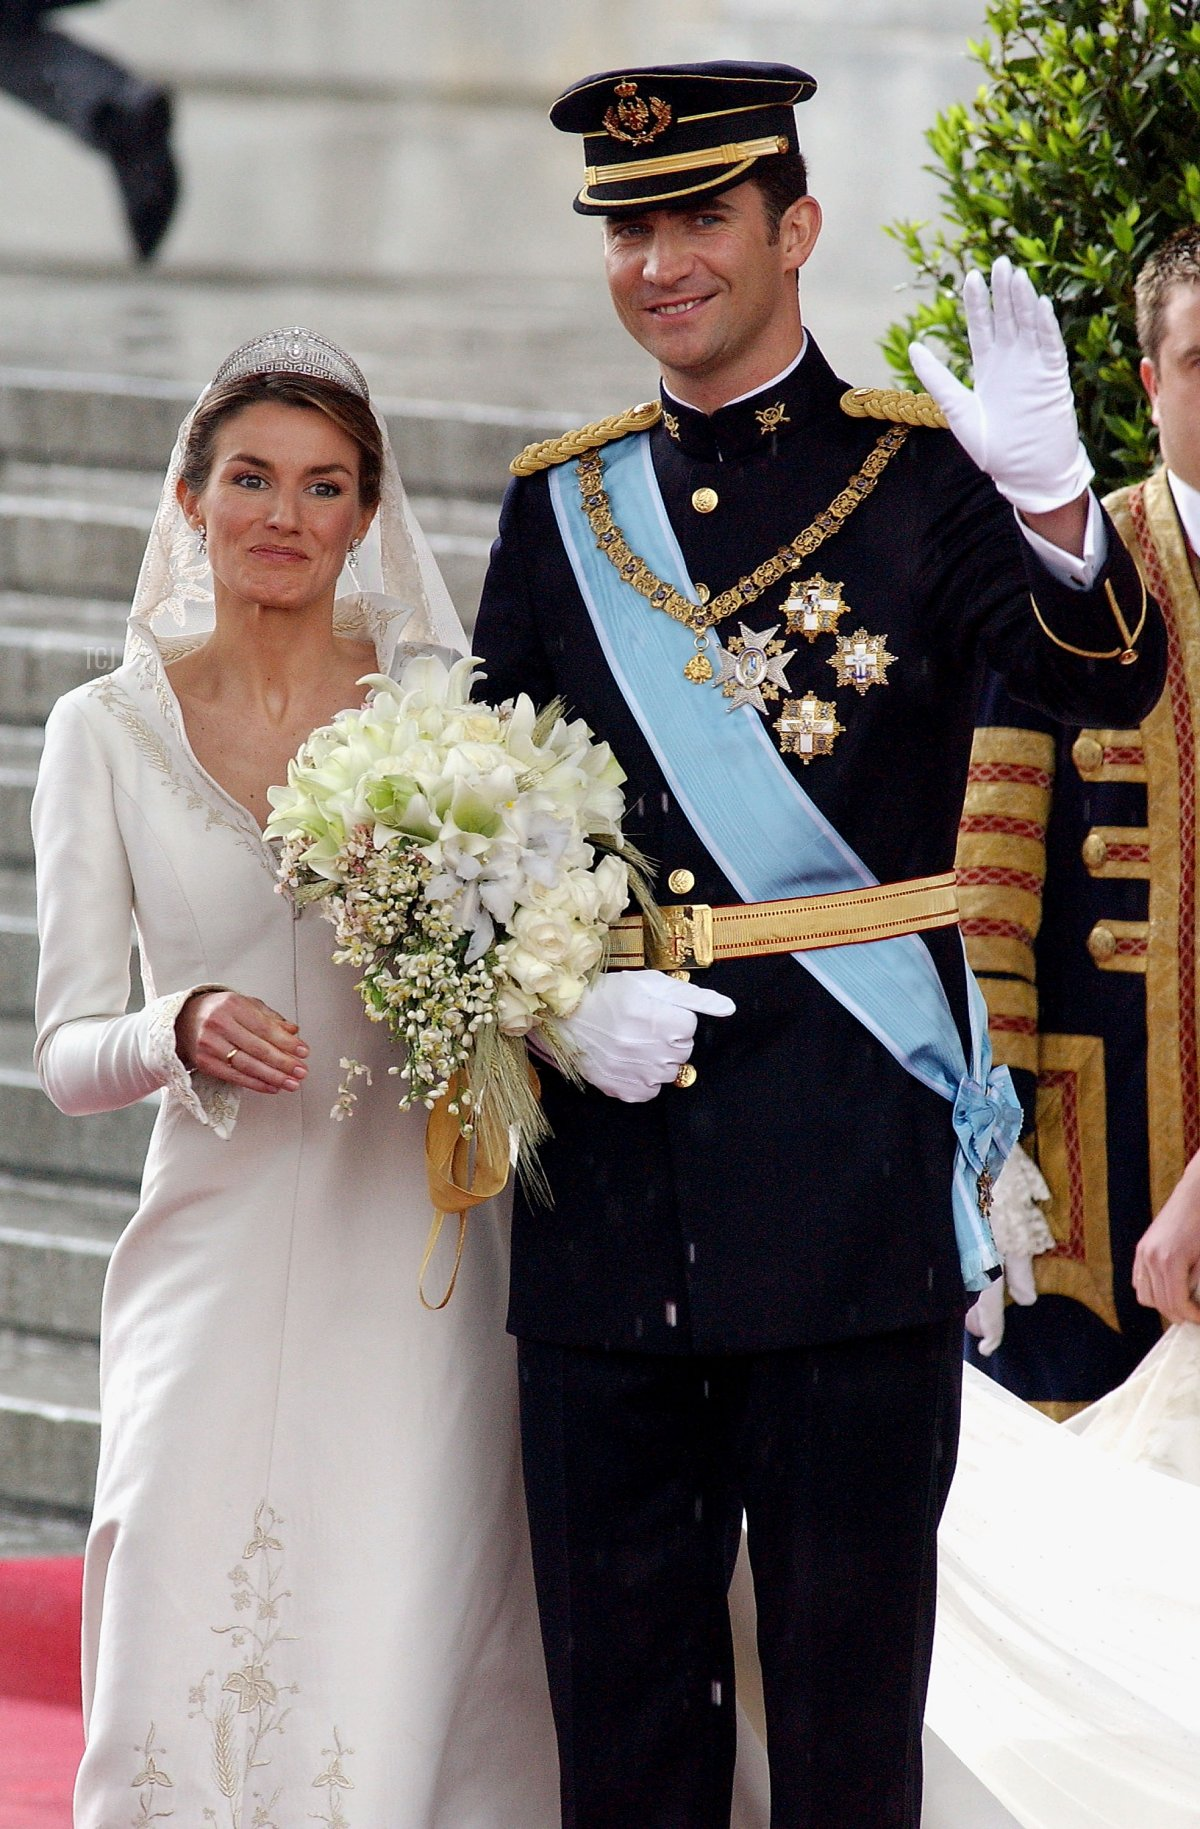 Spanish Crown Prince Felipe de Bourbon and his bride, princess Letizia Ortiz leave the Almudena cathedral after their wedding ceremony May 22, 2004 in Madrid